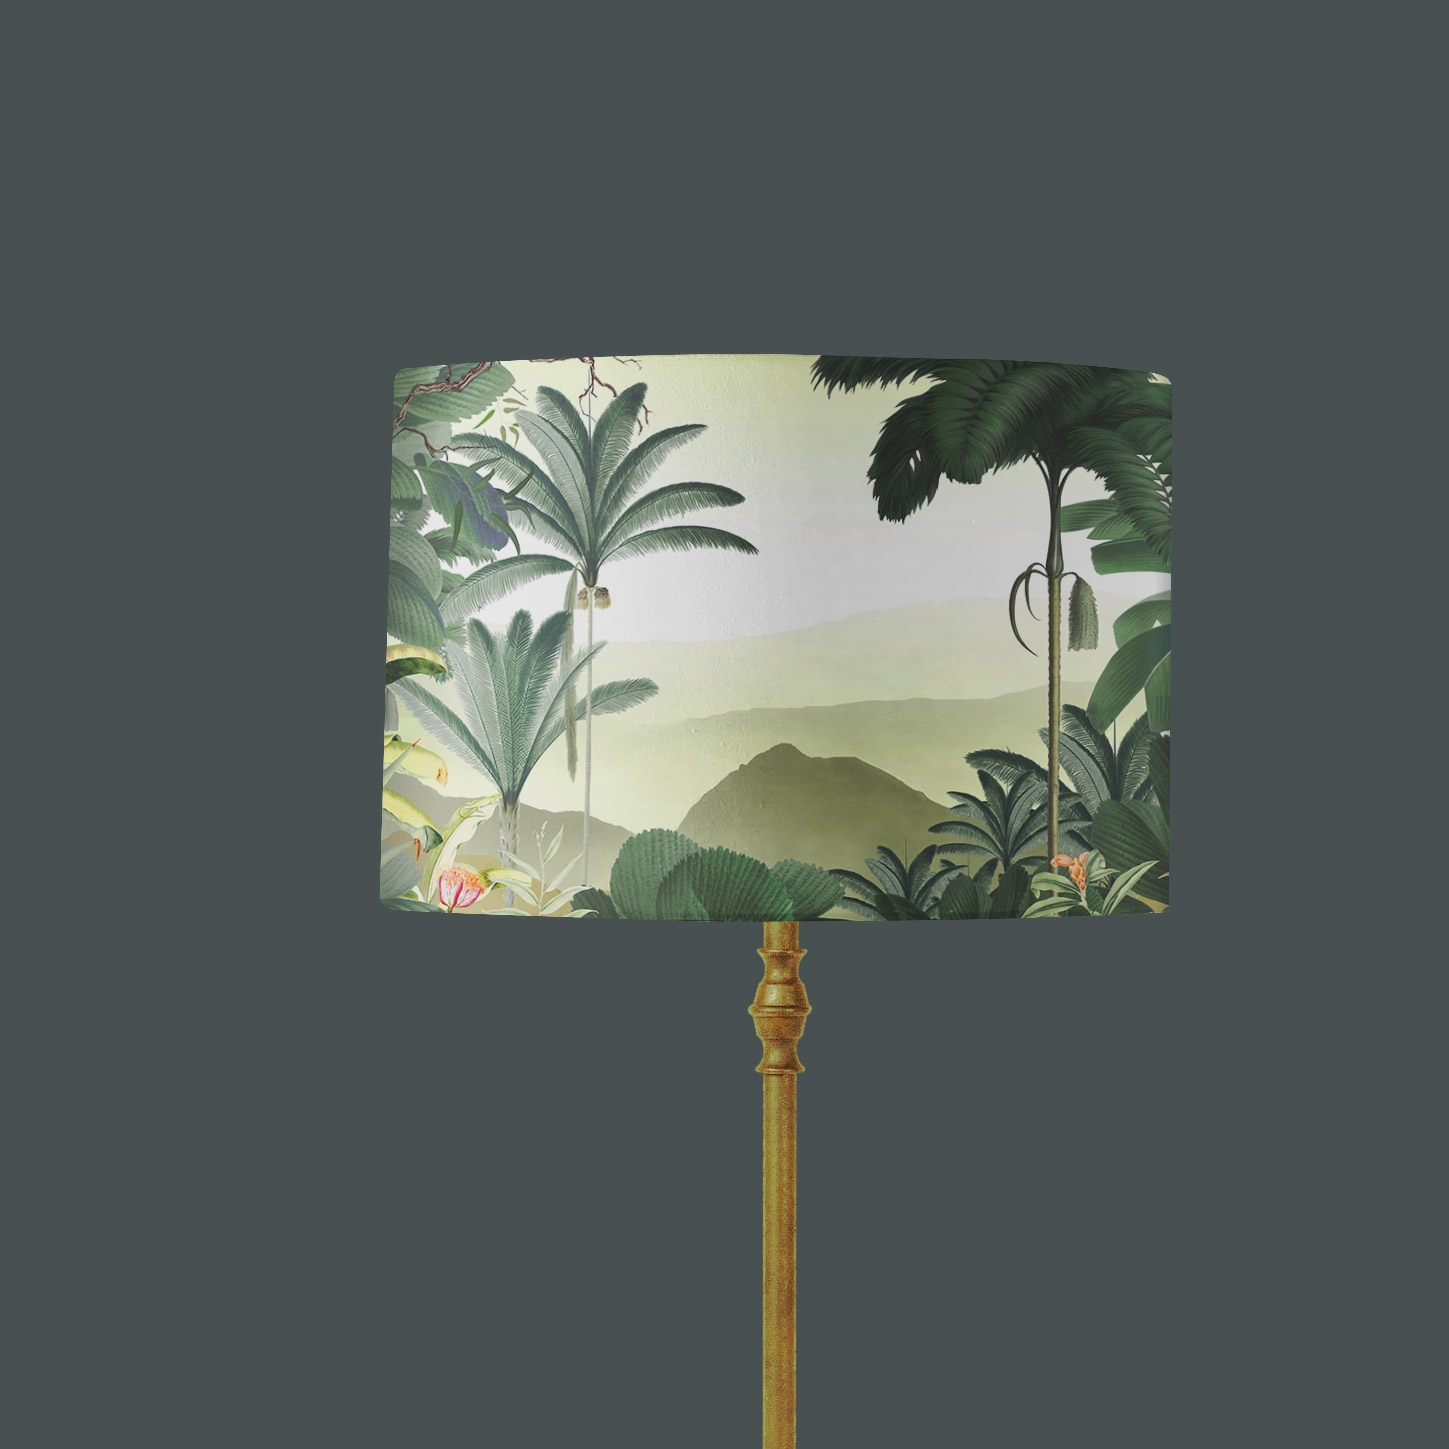 Abat-jour Illustration Jungle tropicale